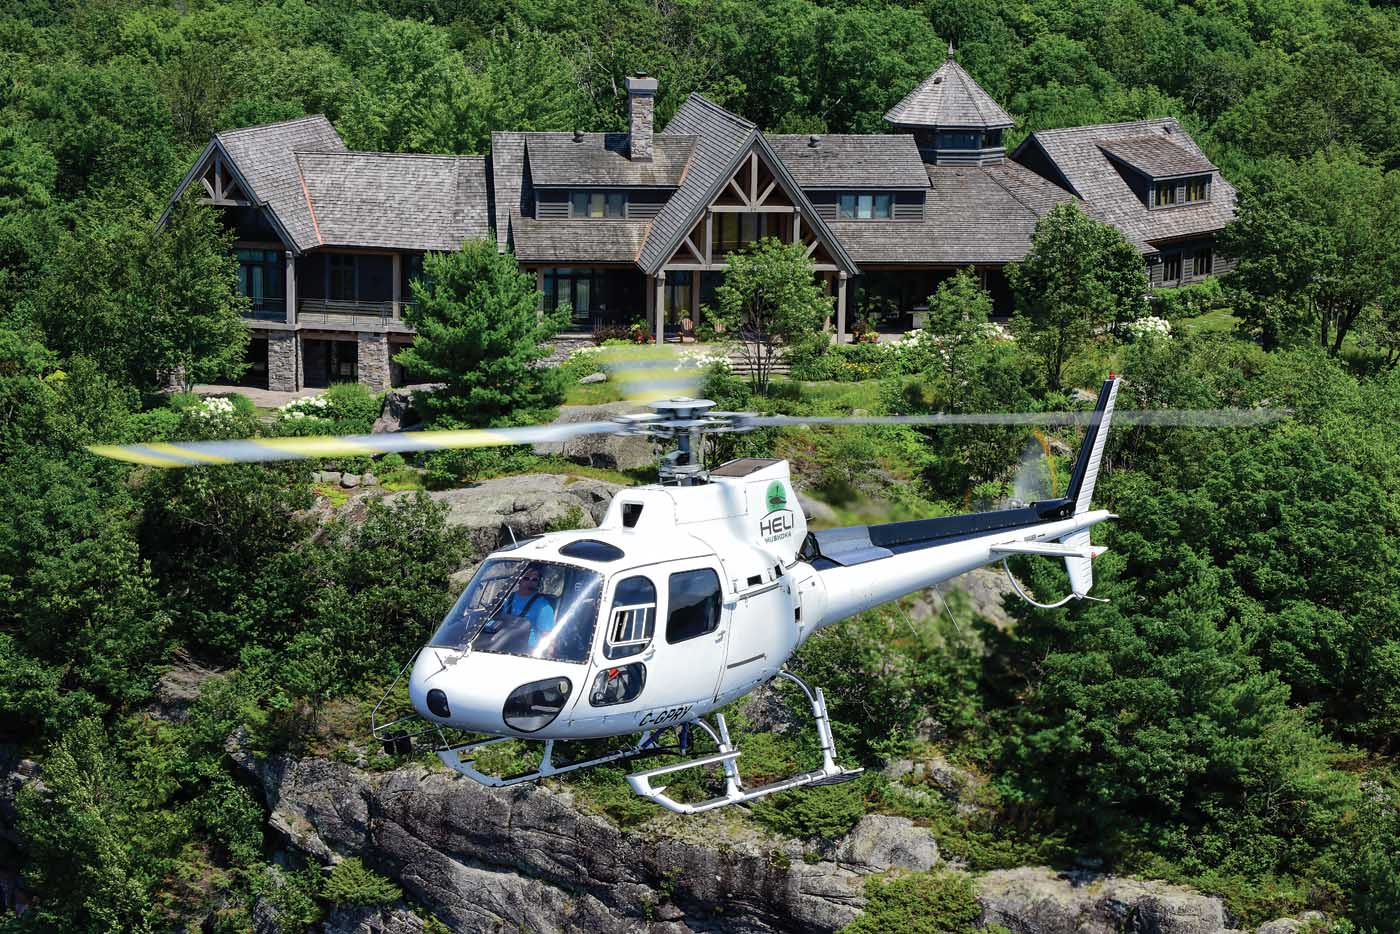 Heli Muskoka is based in the region of Muskoka, about two hours' drive north of Toronto, Ontario. Dotting the shorelines of its many lakes are some truly spectacular country retreats.